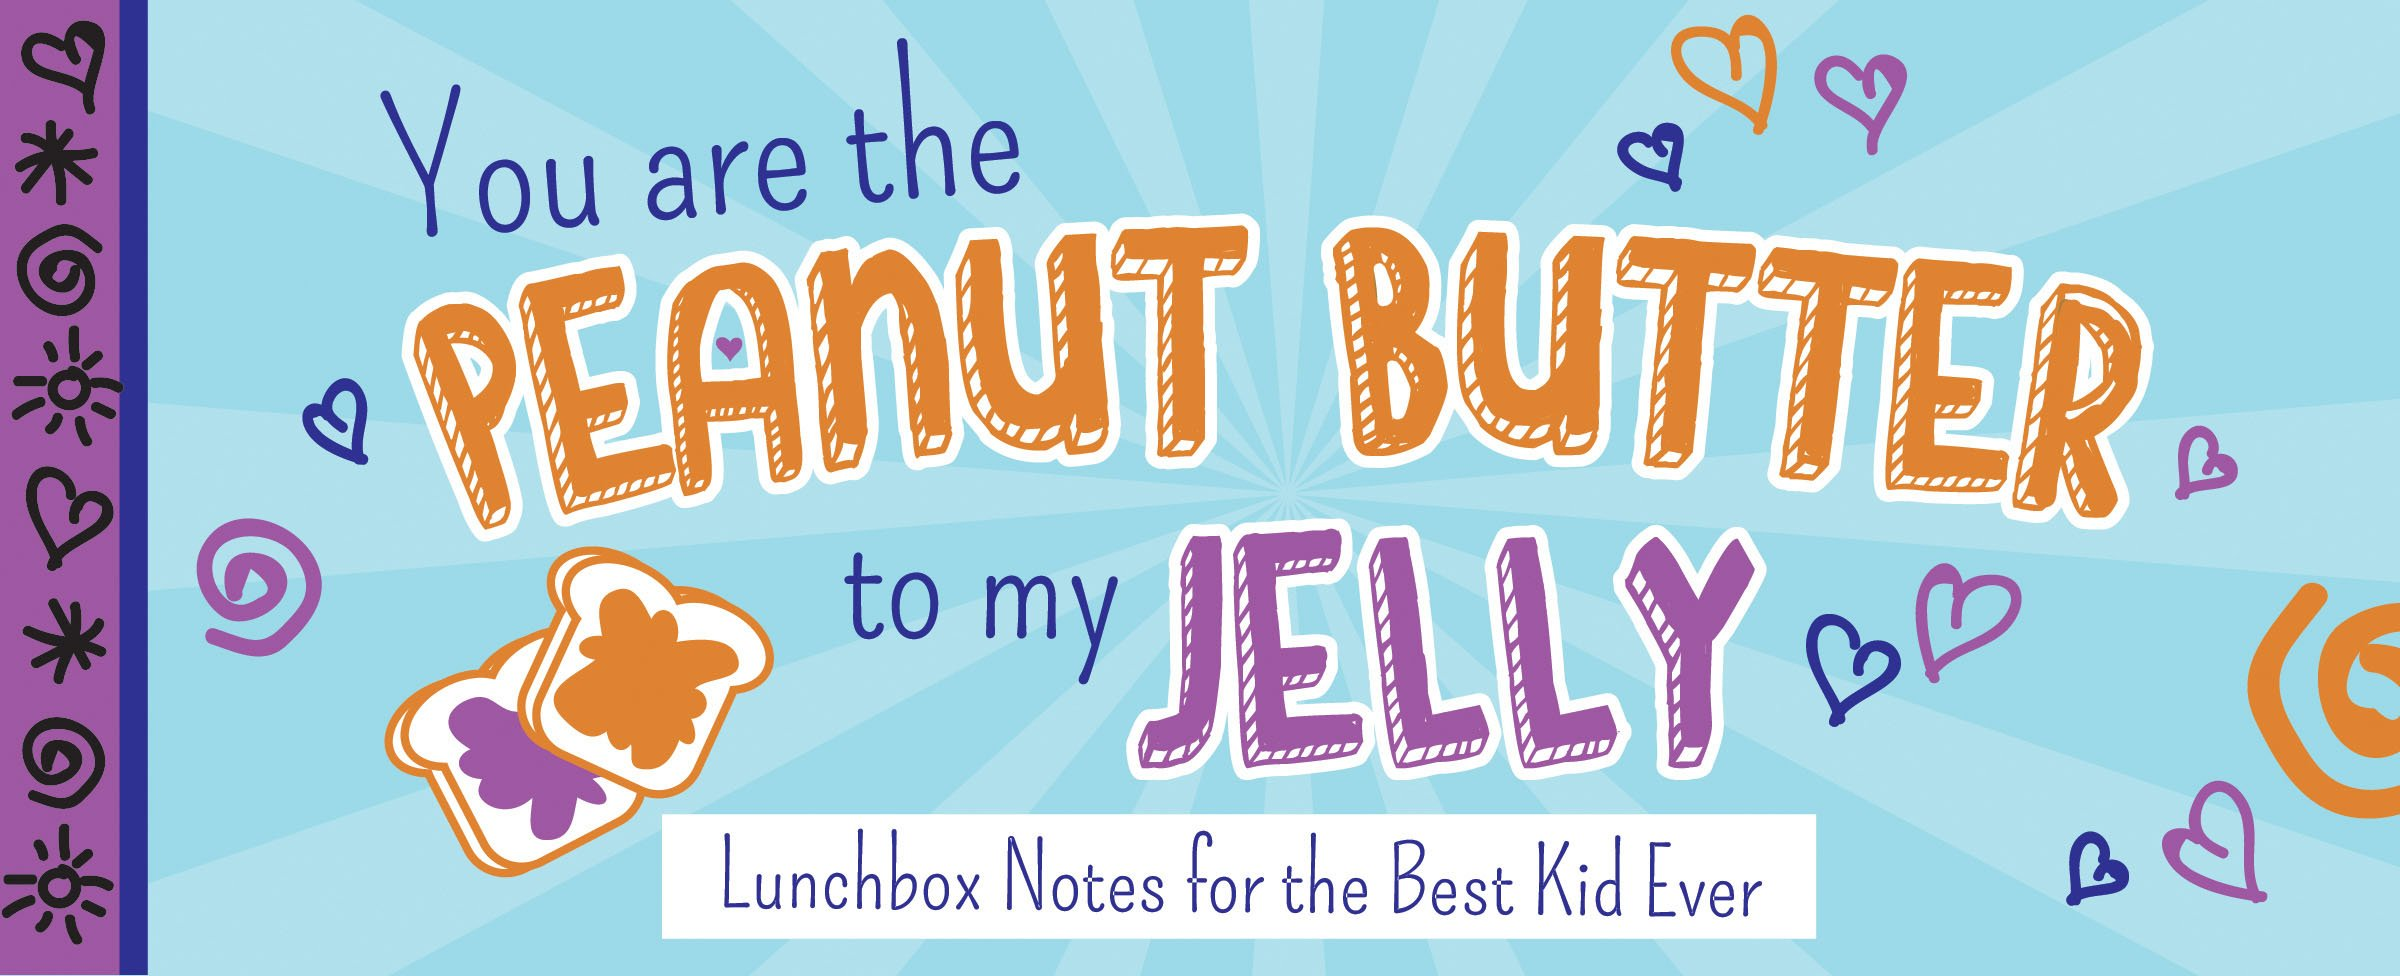 You Are the Peanut Butter to My Jelly: Lunch Box Notes for the Best Kid Ever (Sealed with a Kiss) PDF